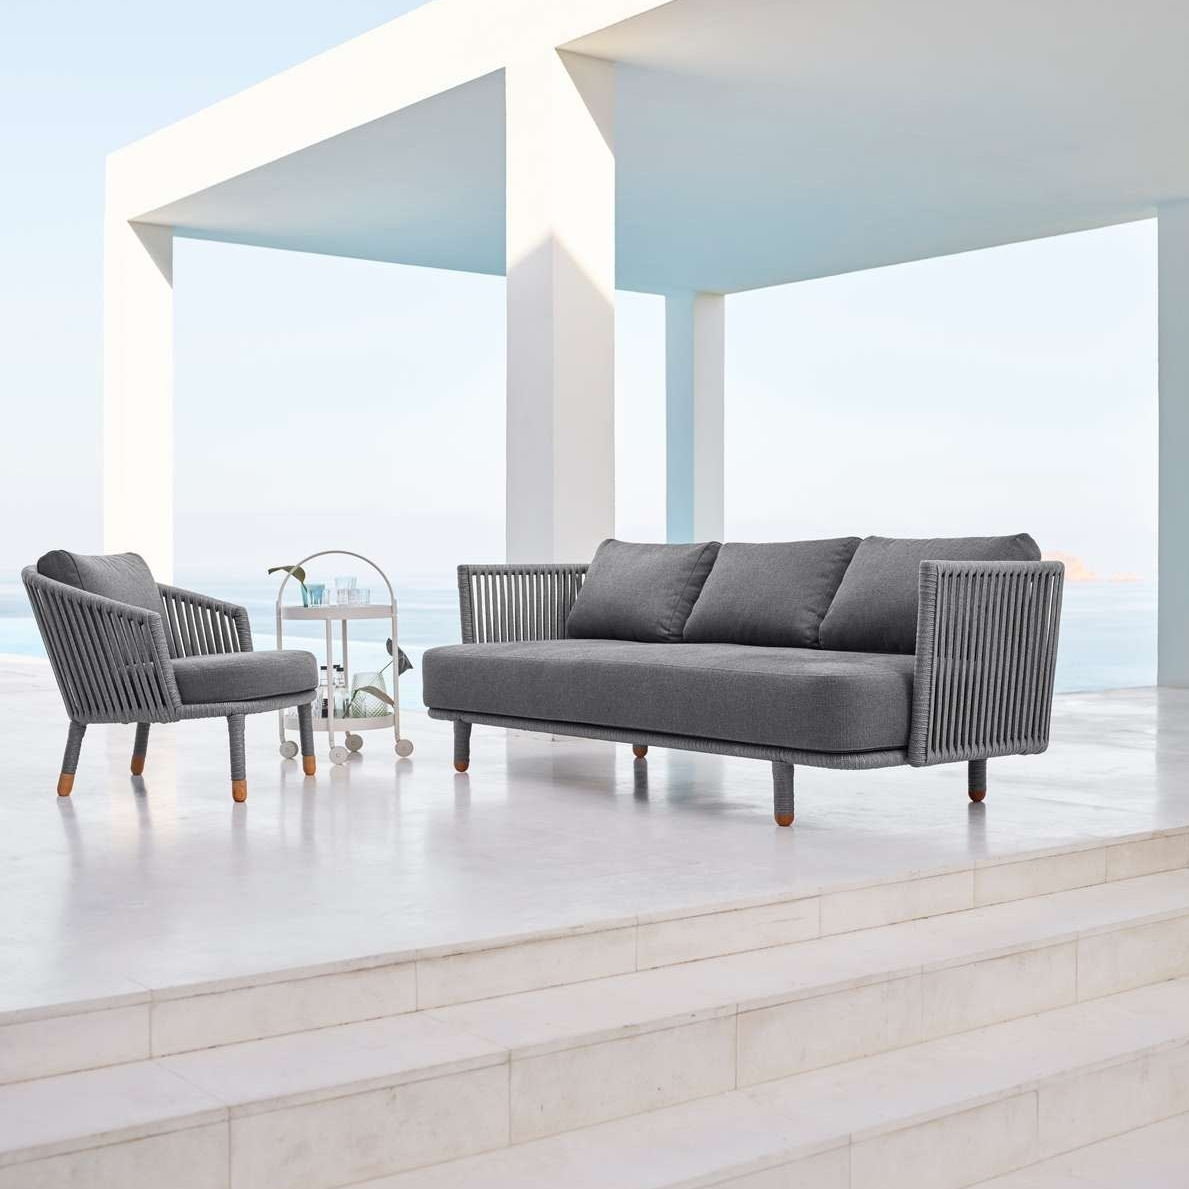 Moments Lounge Collection   Elegant minimalistic Scandinavian design.   Click to shop this collection.    Dining collection also available.